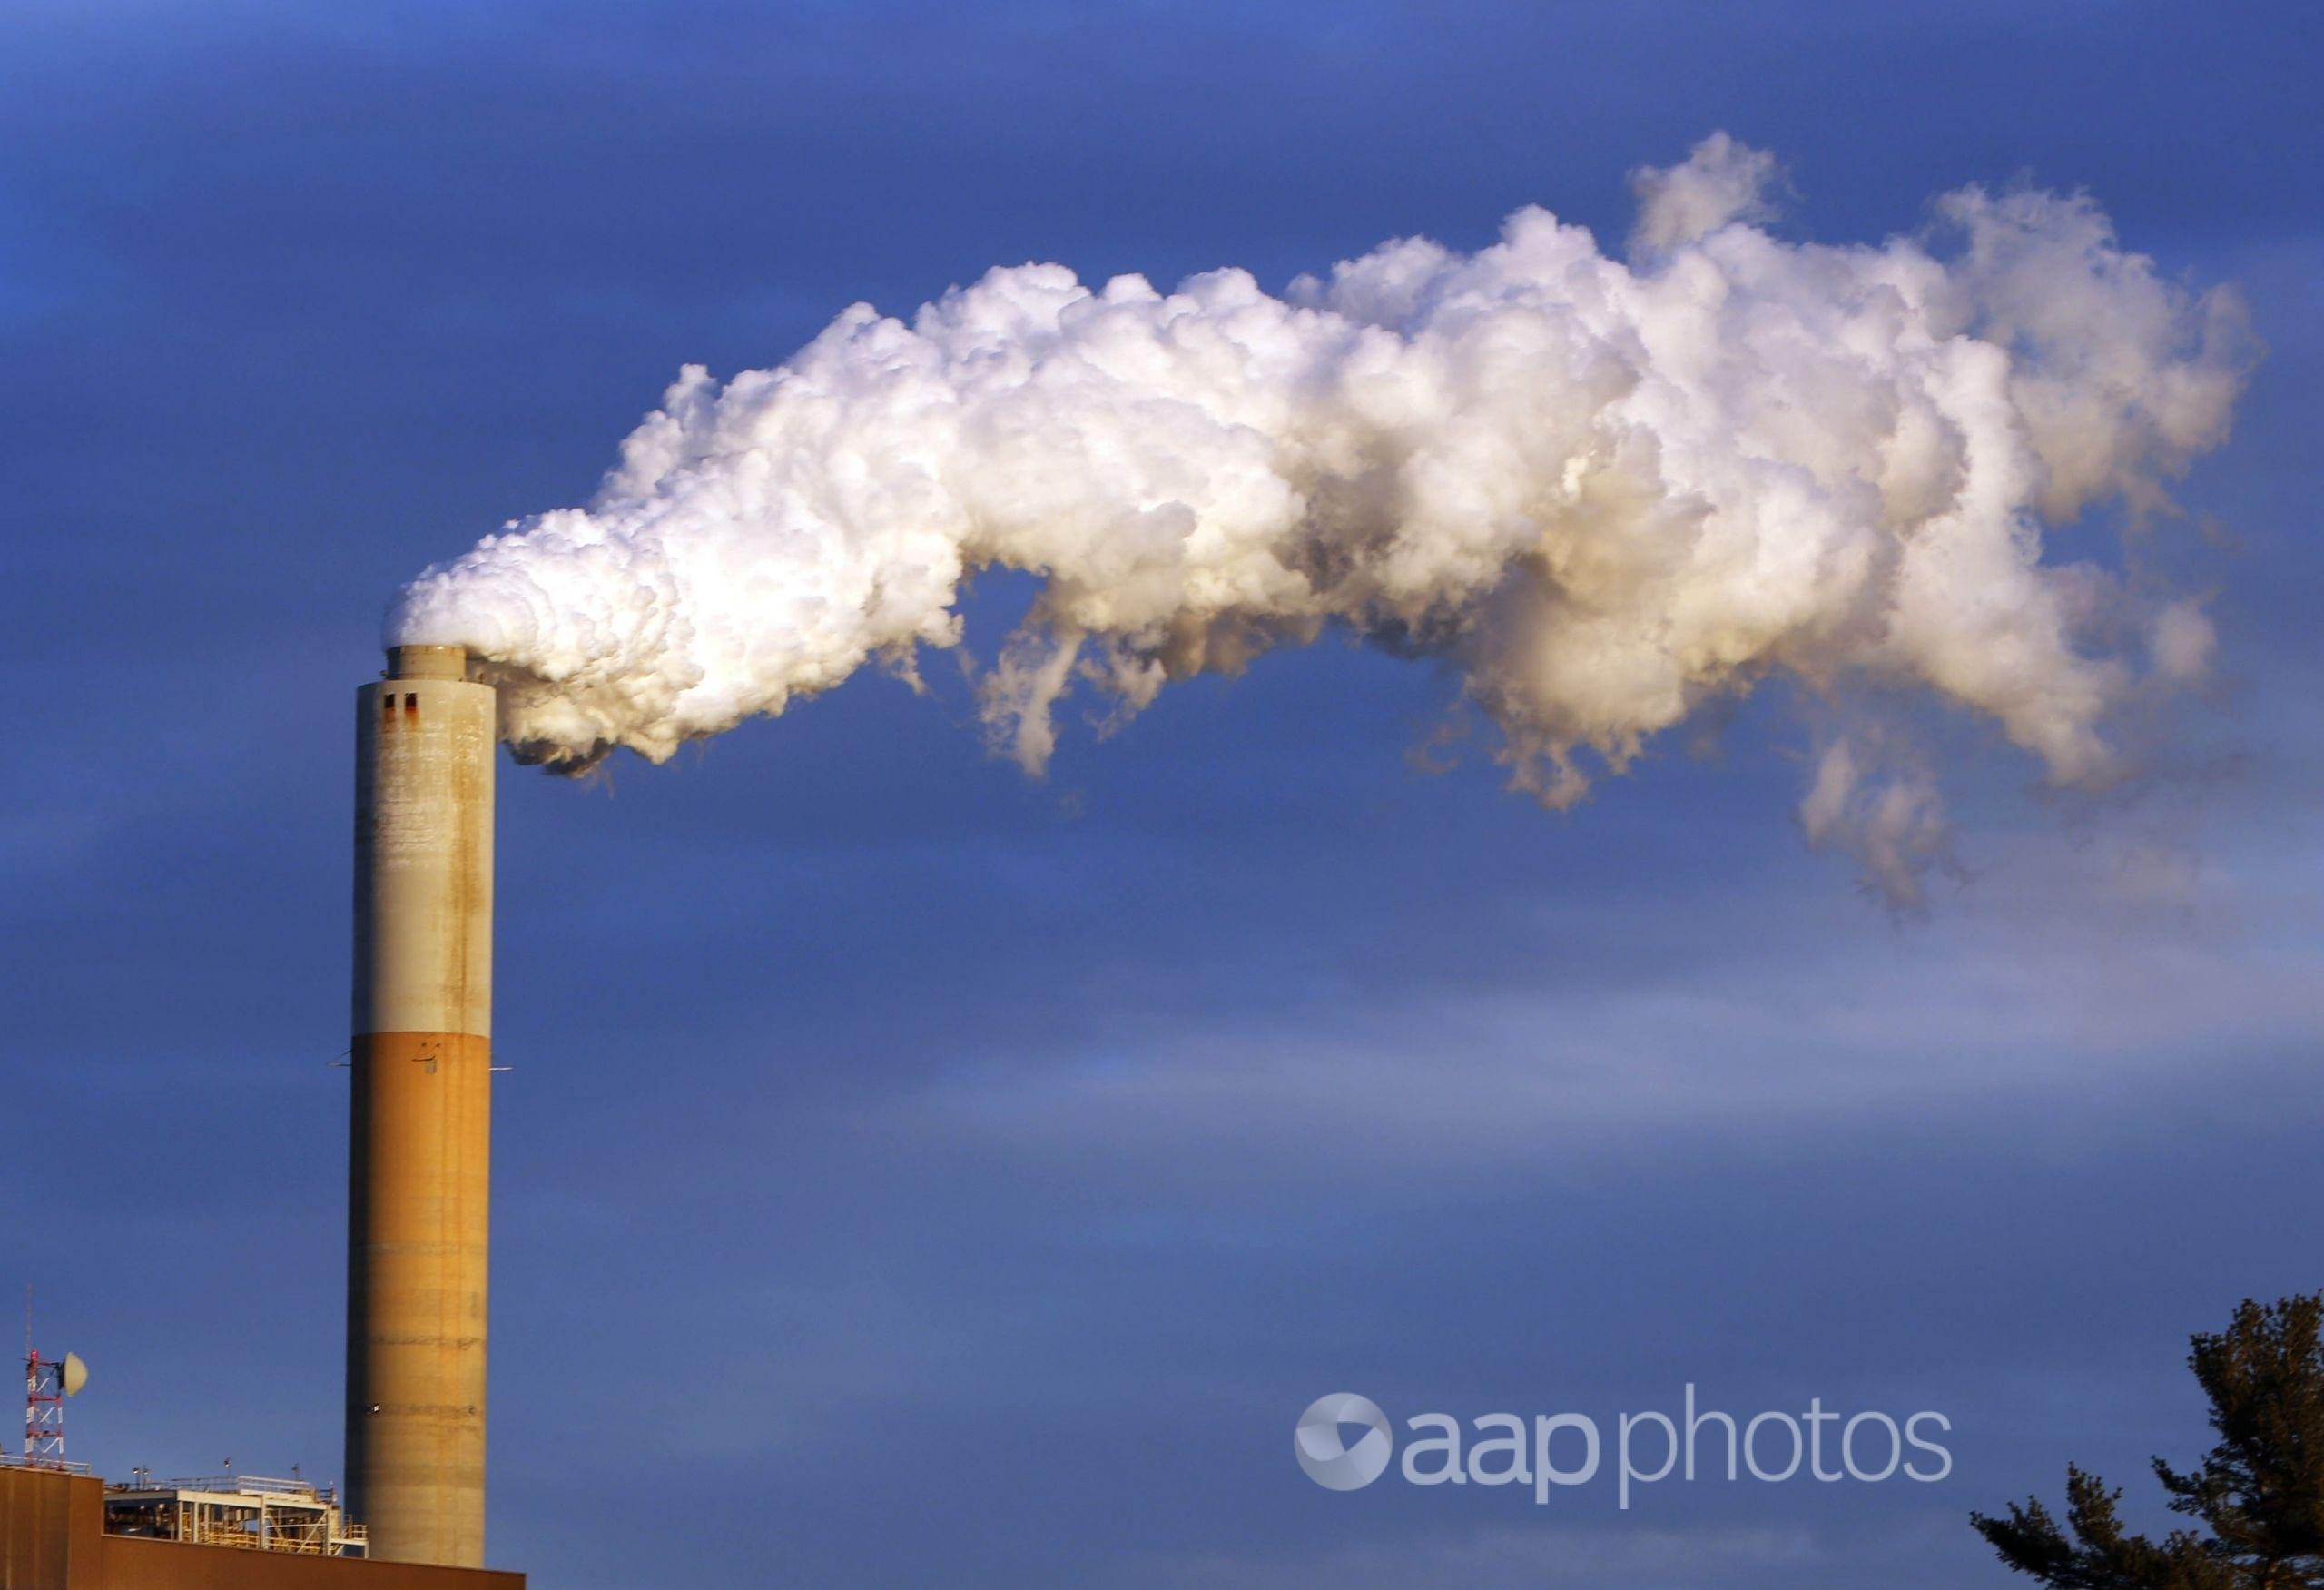 Steam billows from the chimney of a coal-fired power station.